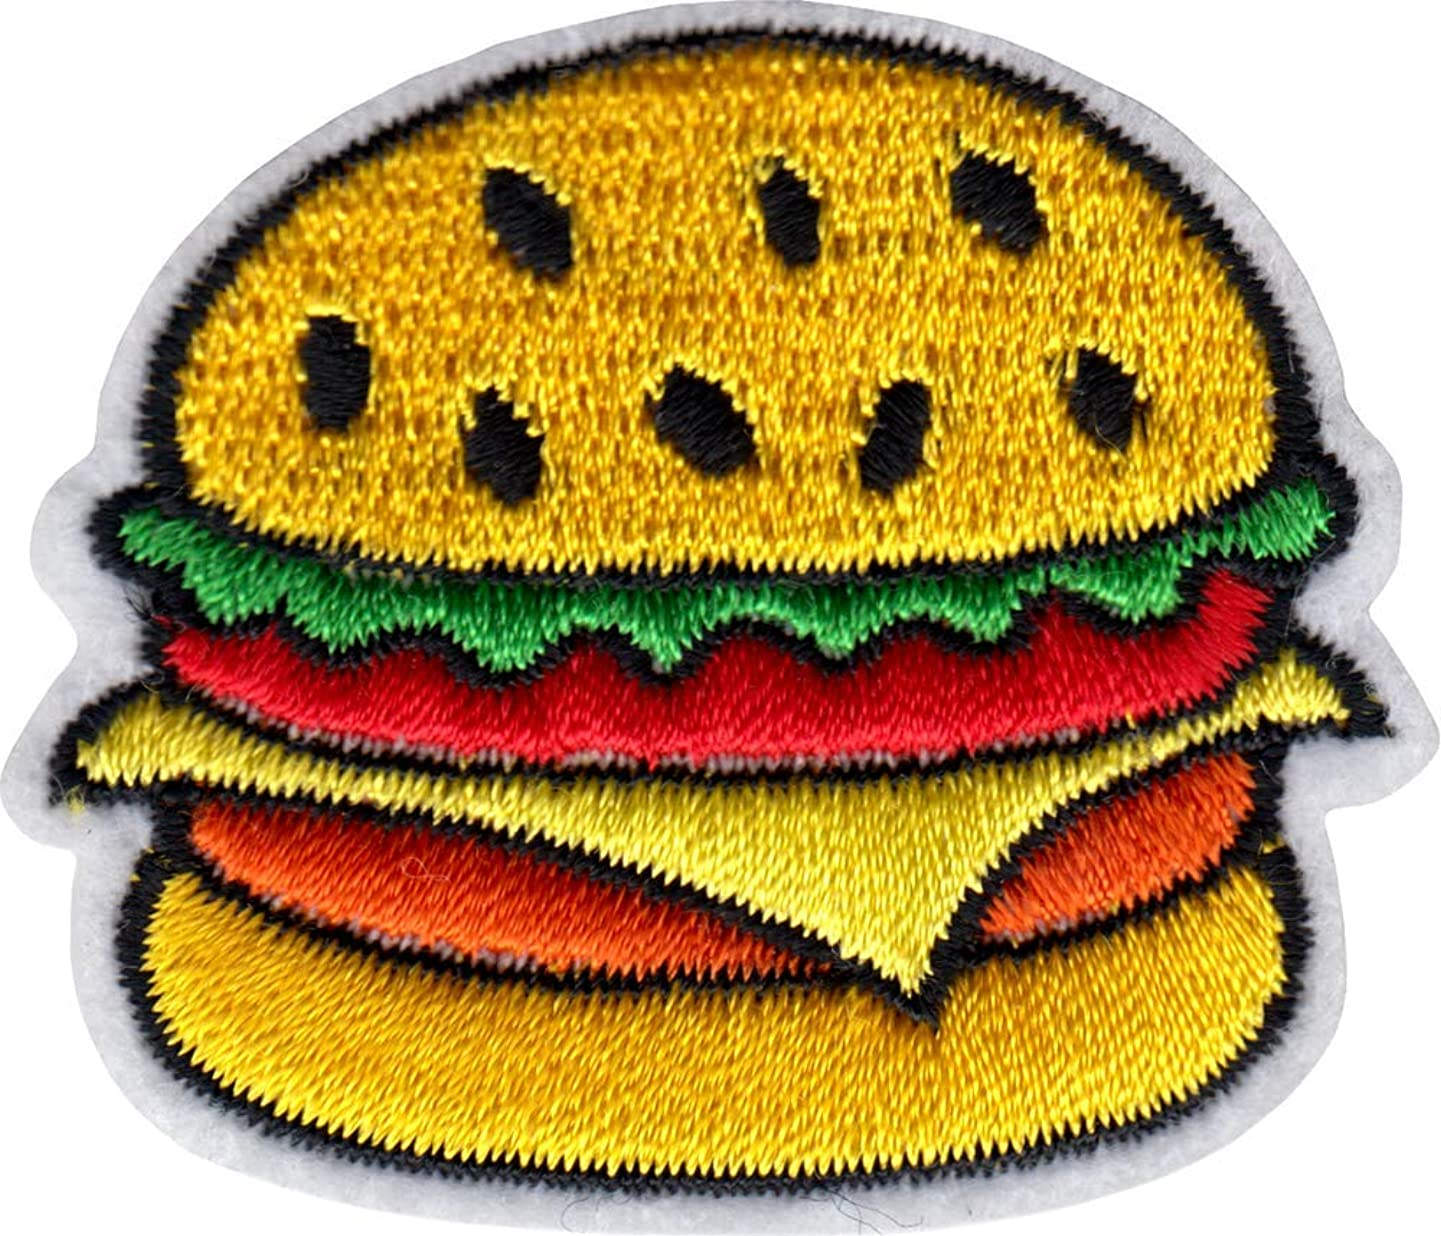 Juicy Cheeseburger - Cut Out Embroidered Iron On or Sew On Patch